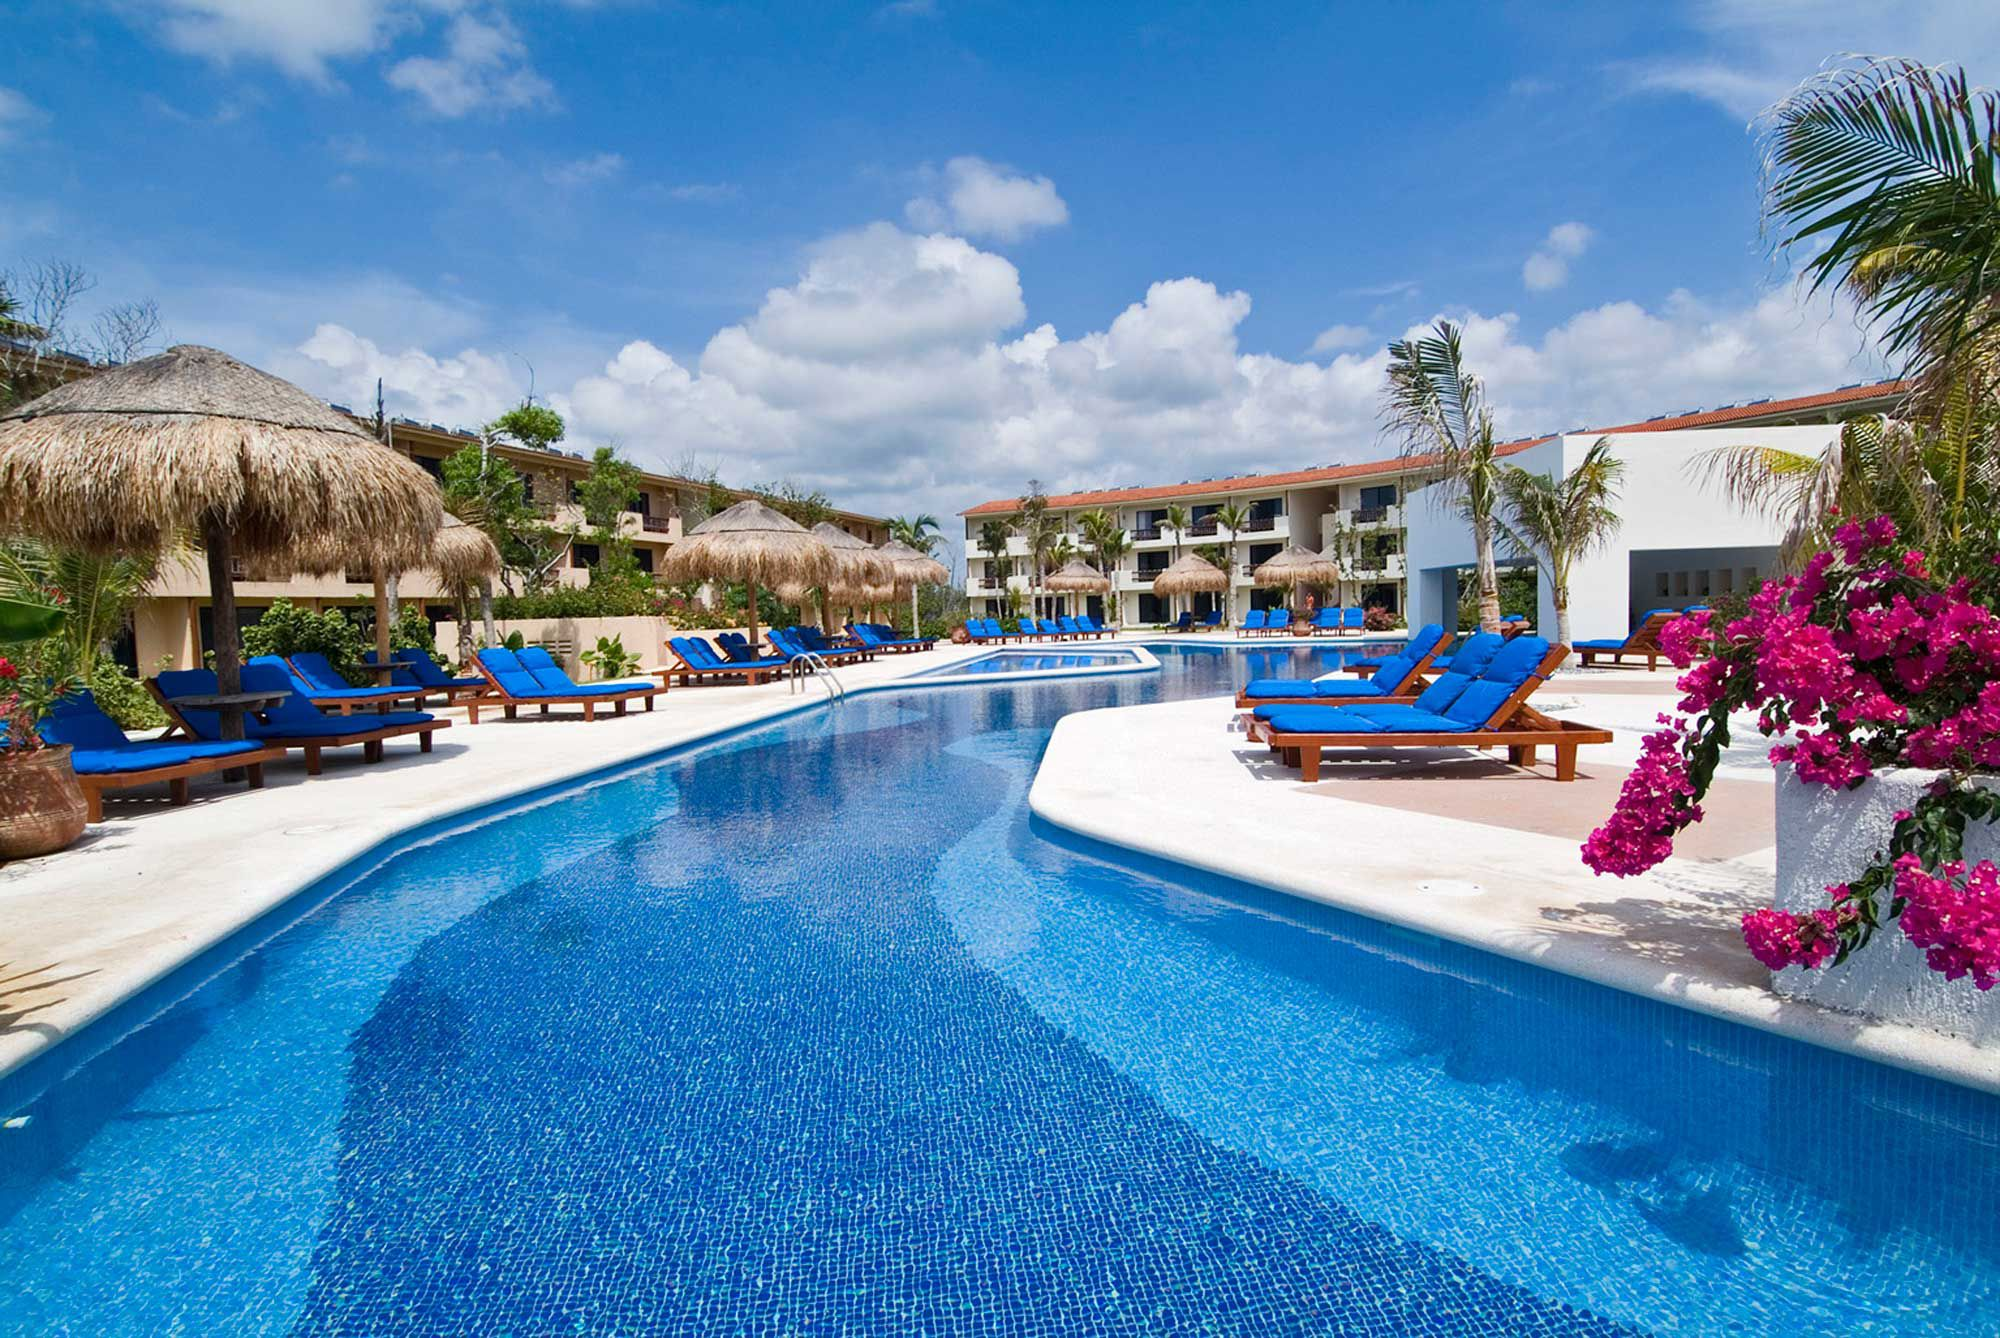 all-inclusive honeymoon packages for under $2,000